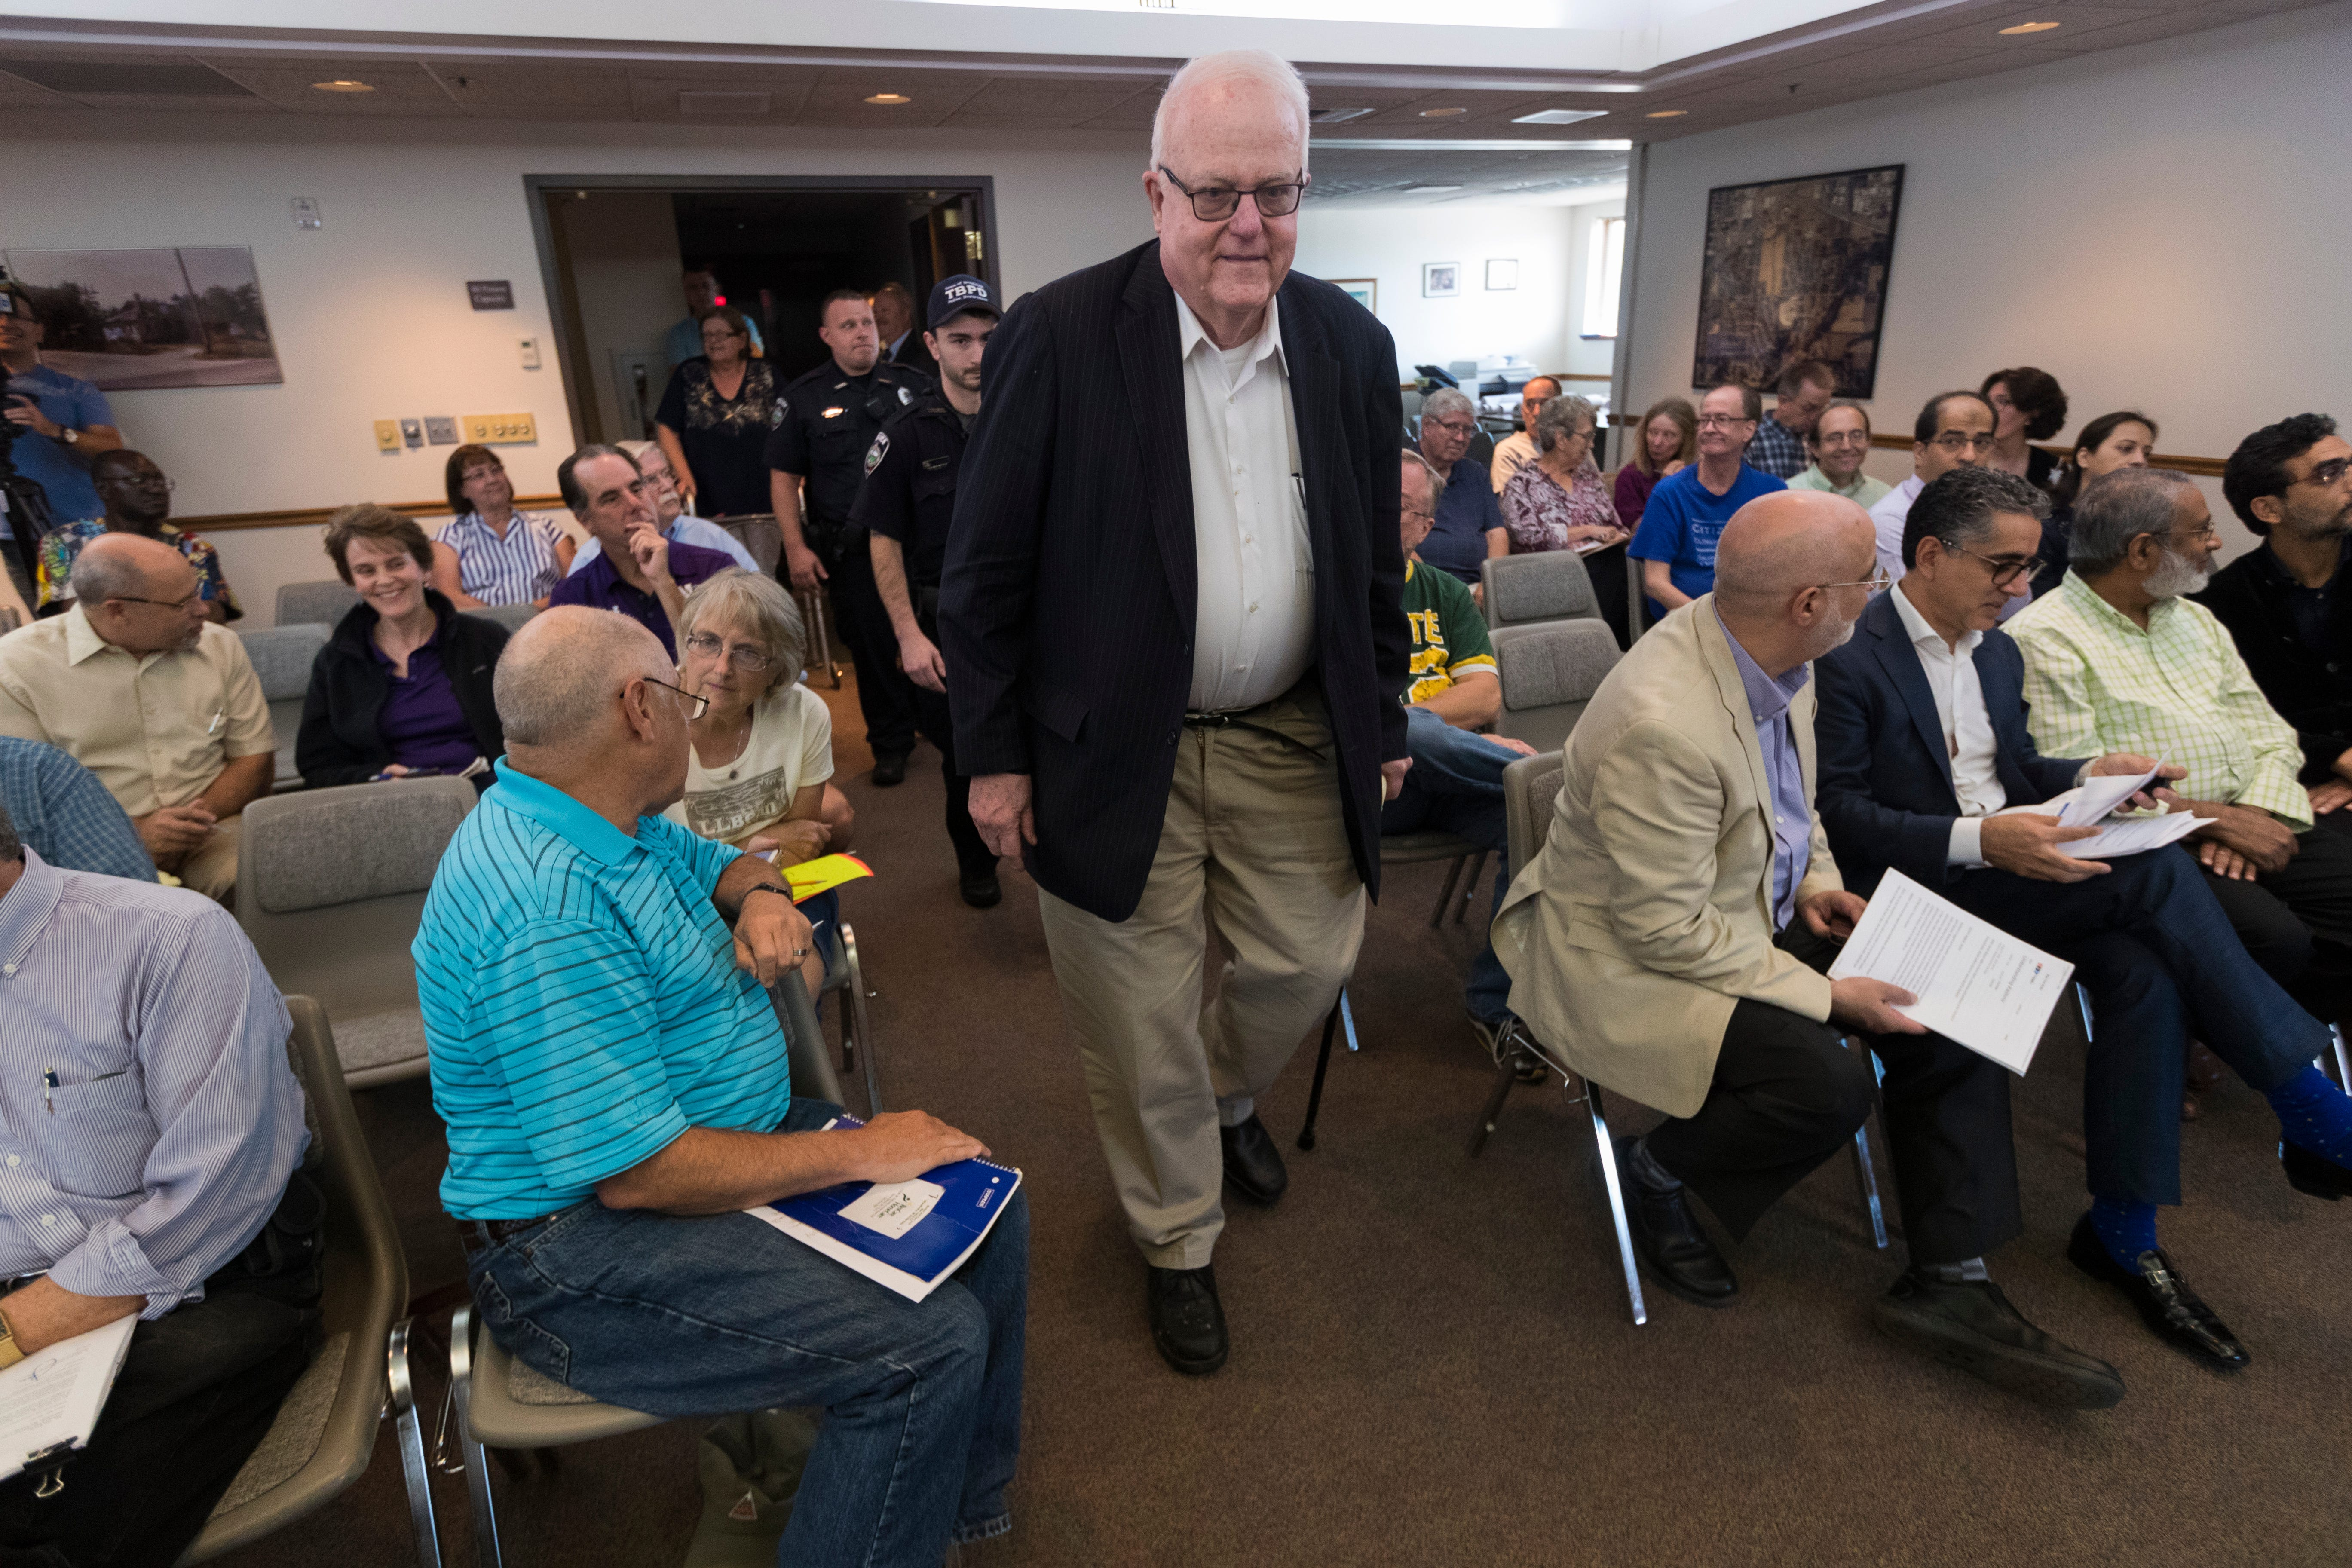 Shortly after announcing he was serving his last term, Rep. Jim Sensenbrenner, the  second longest-serving member of the House, hosted a listening session in Waukesha County, one of the highest performing Republican counties of its size in America.